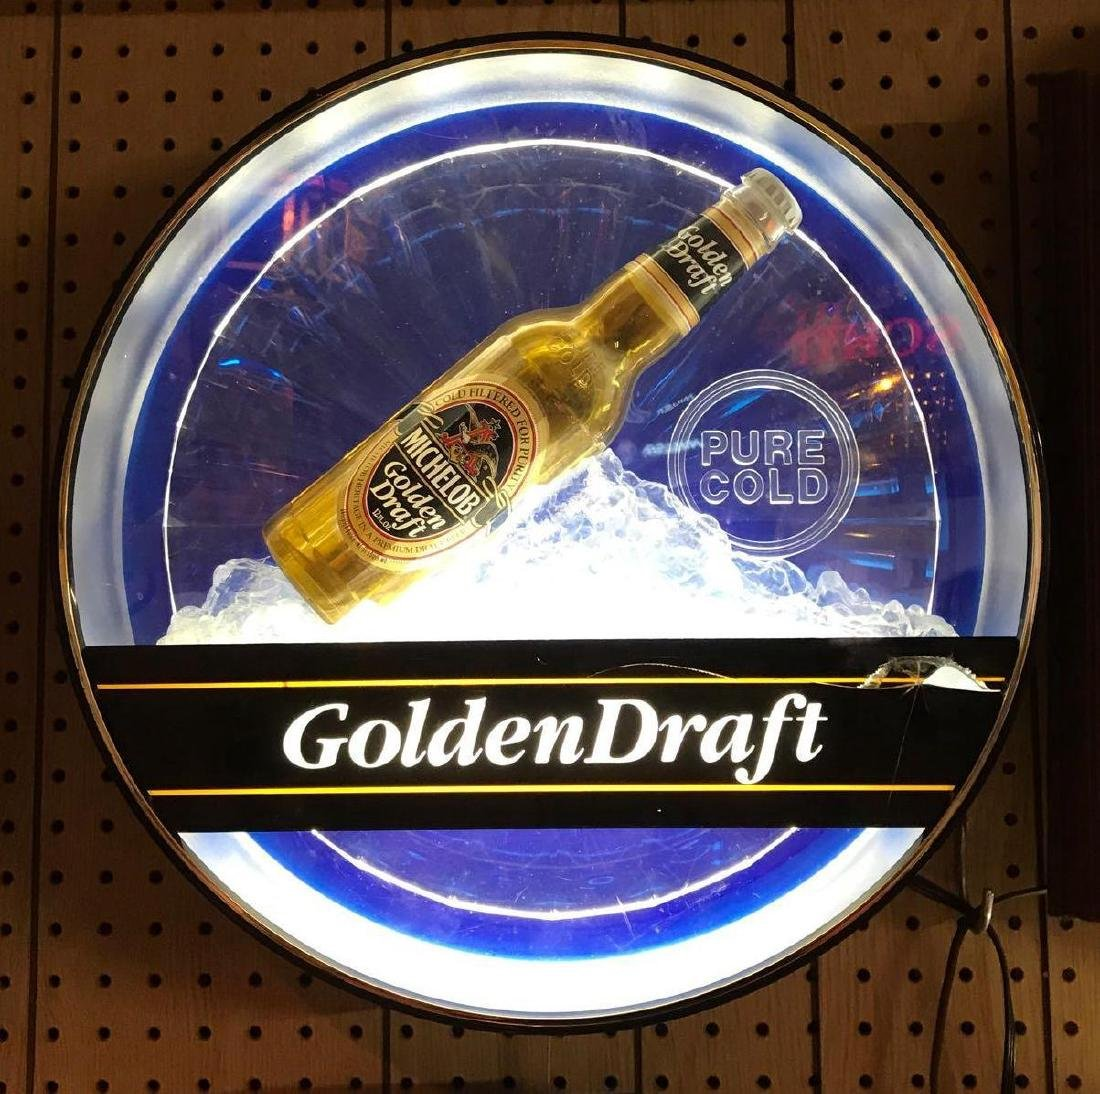 Michelob Golden Draft Pure Cold Light Up Advertising